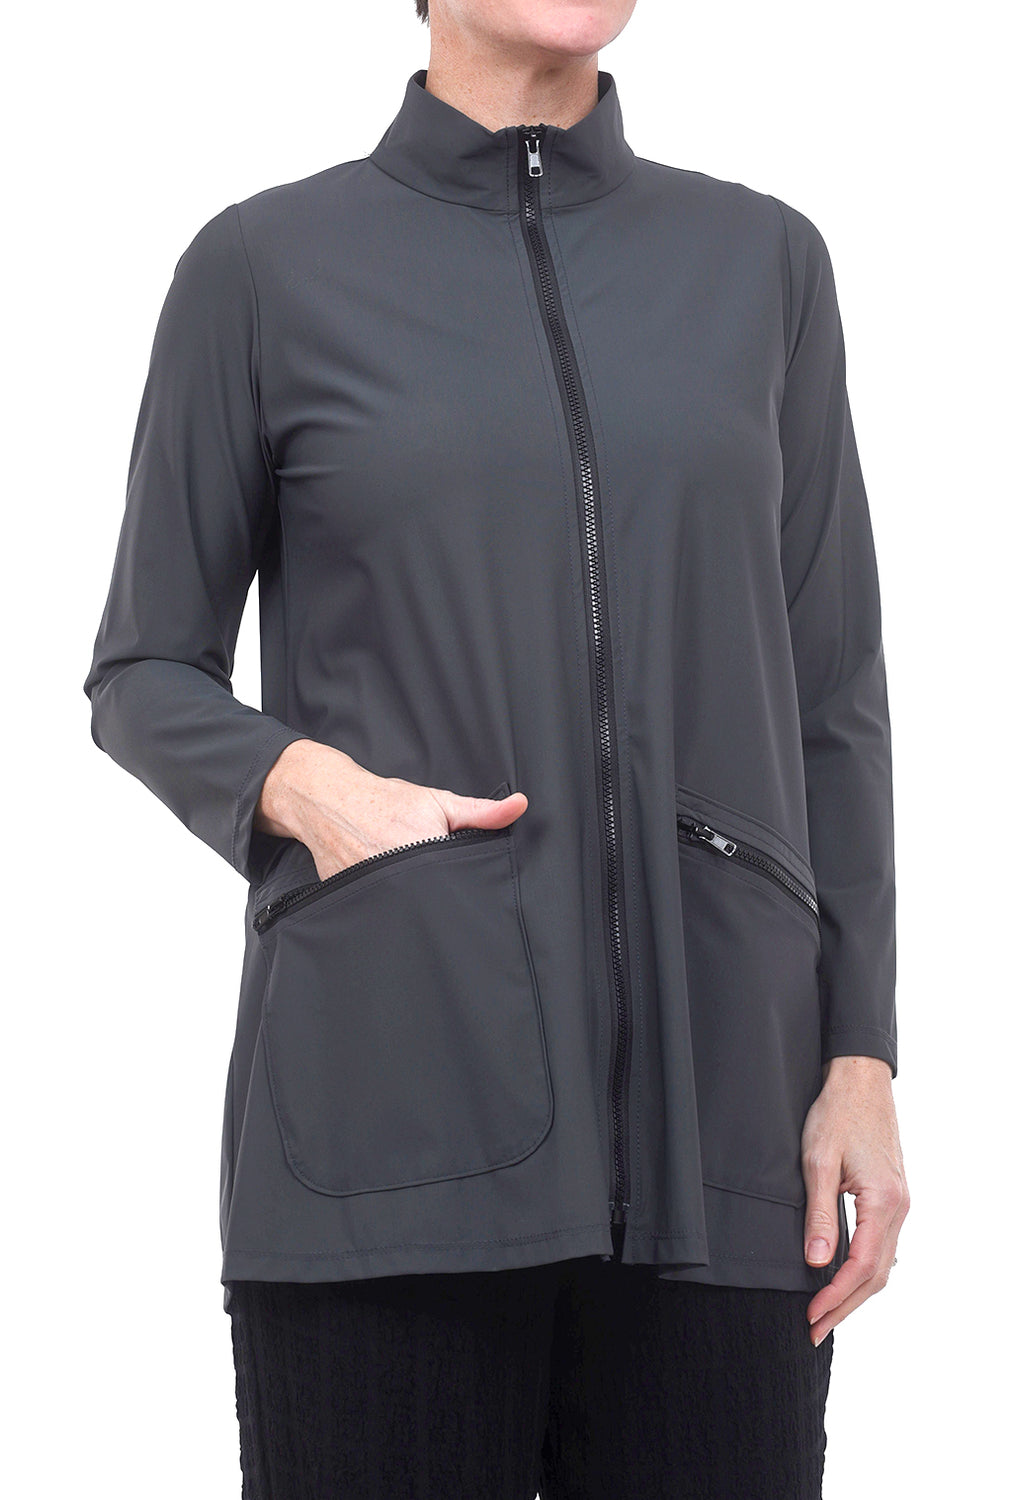 Jason by Comfy USA Selina Jacket, Slate